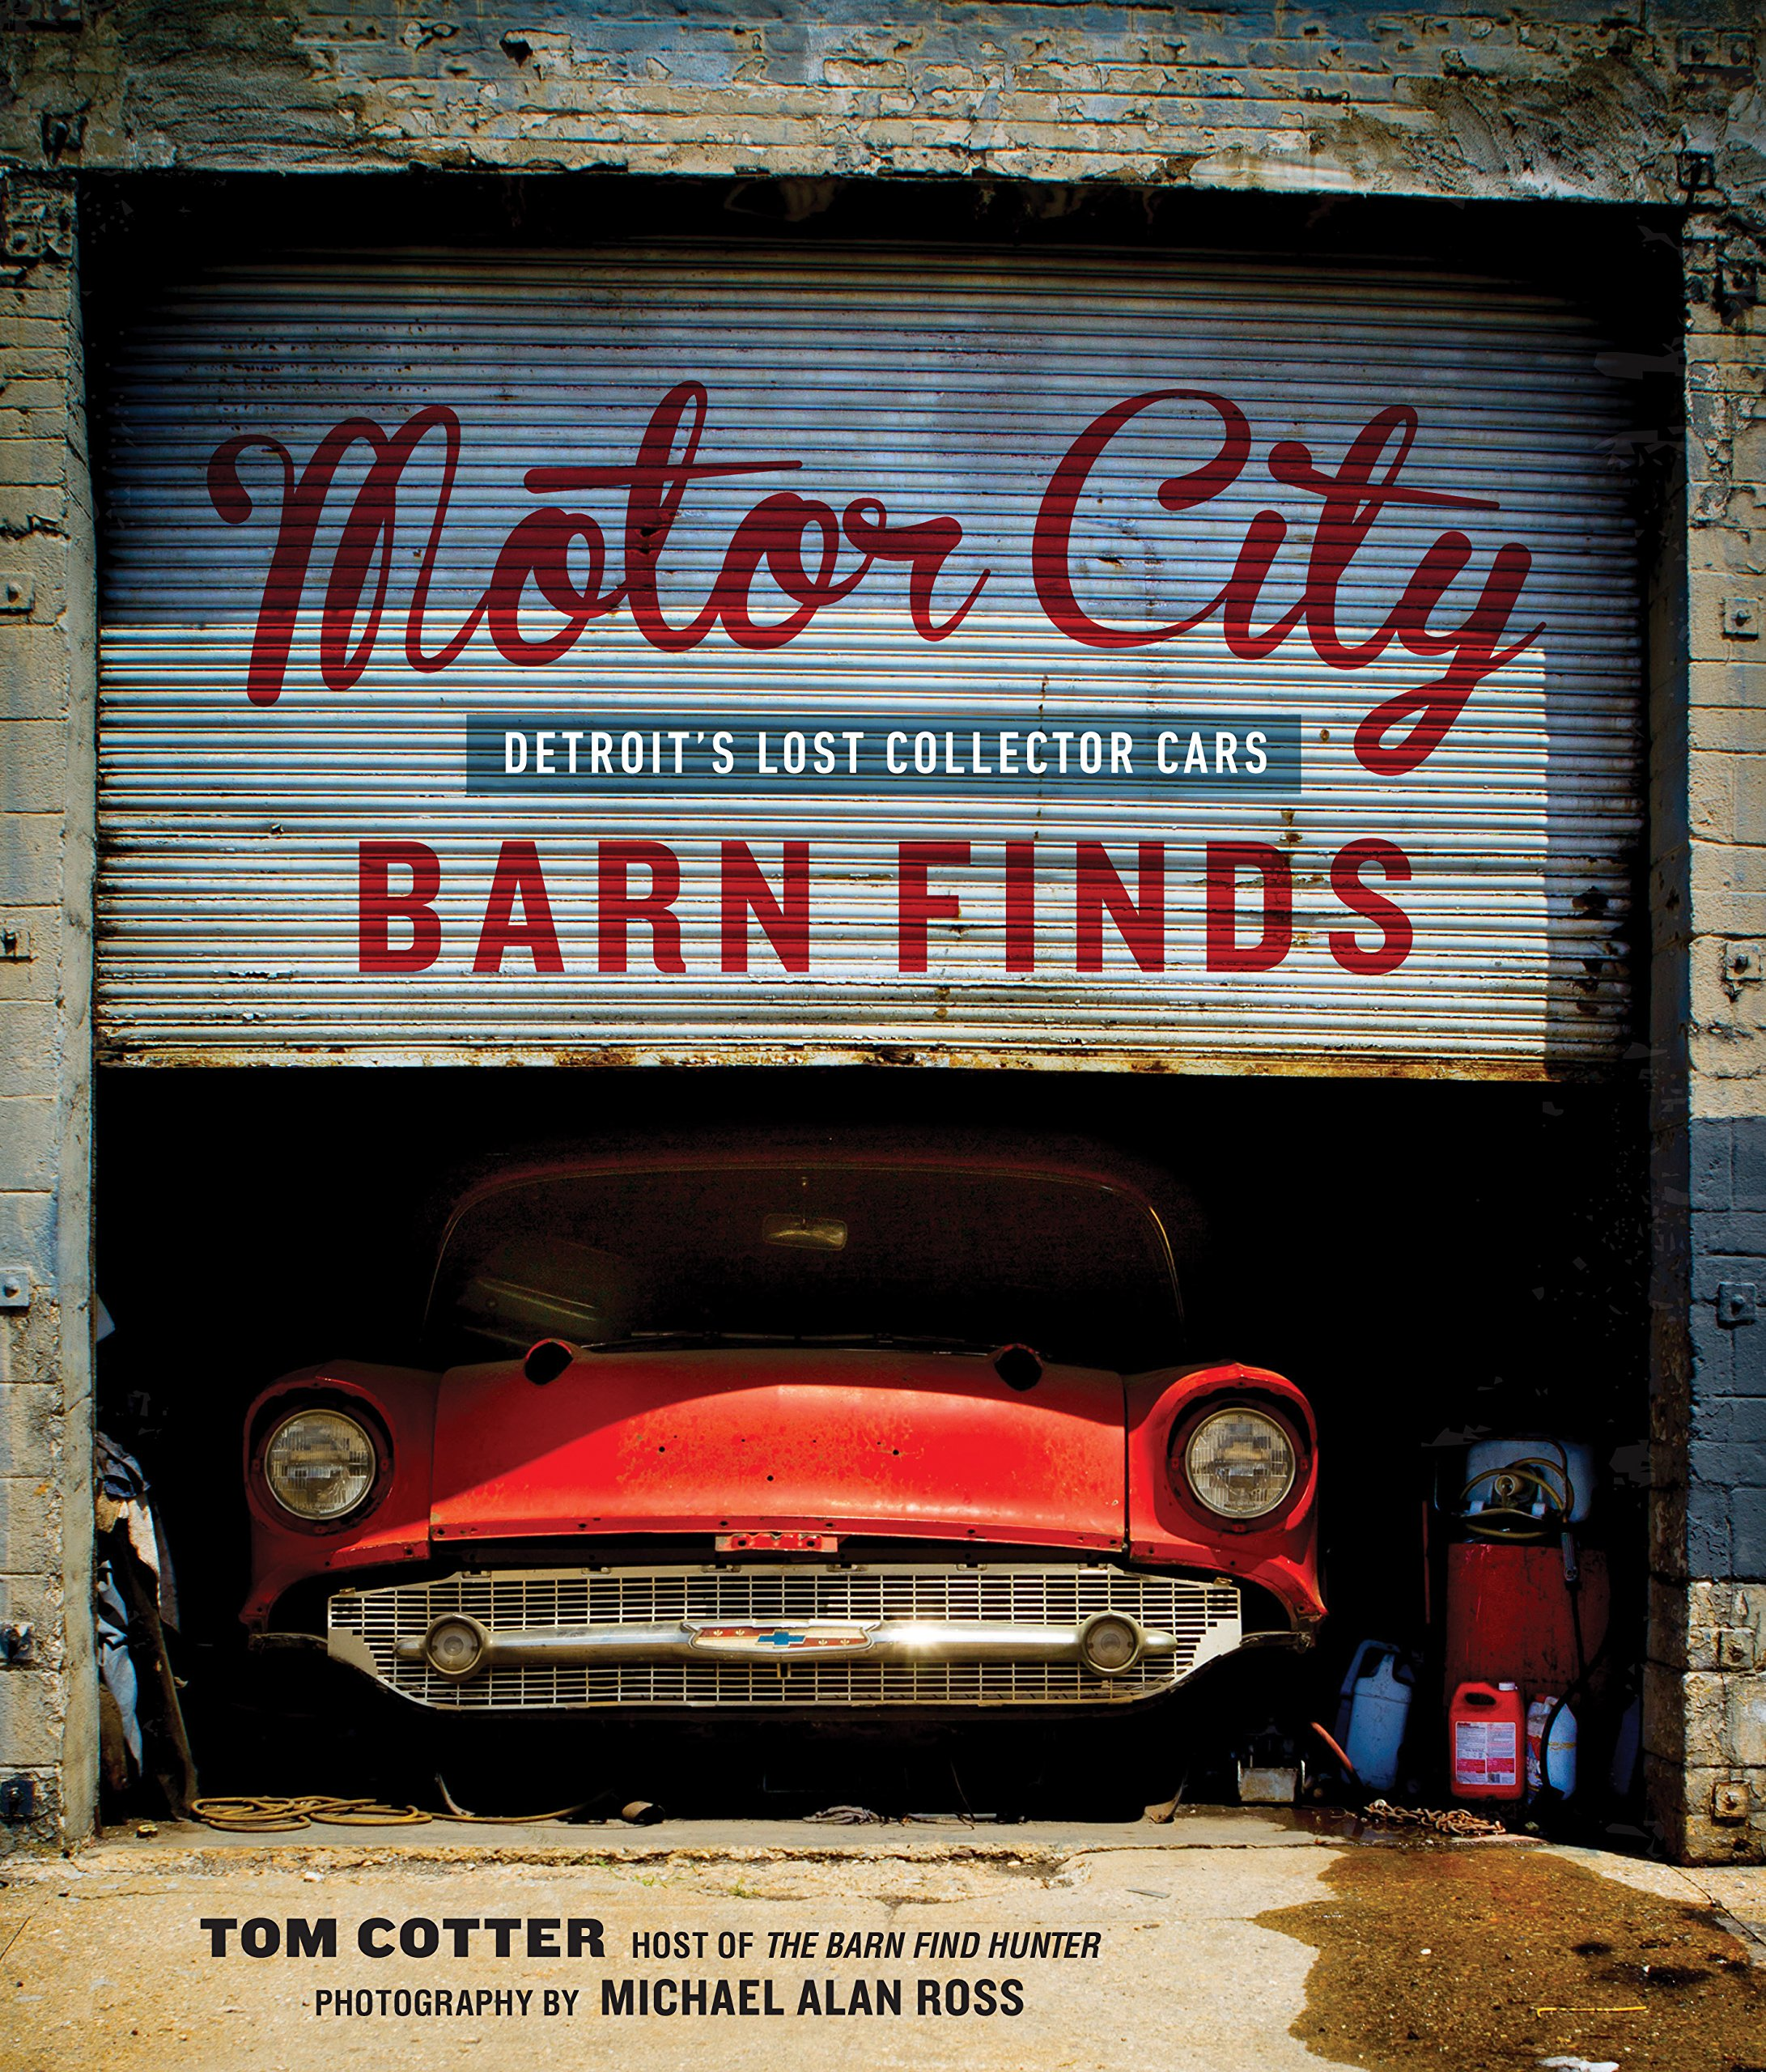 Motor City Barn Finds Detroits Lost Collector Cars